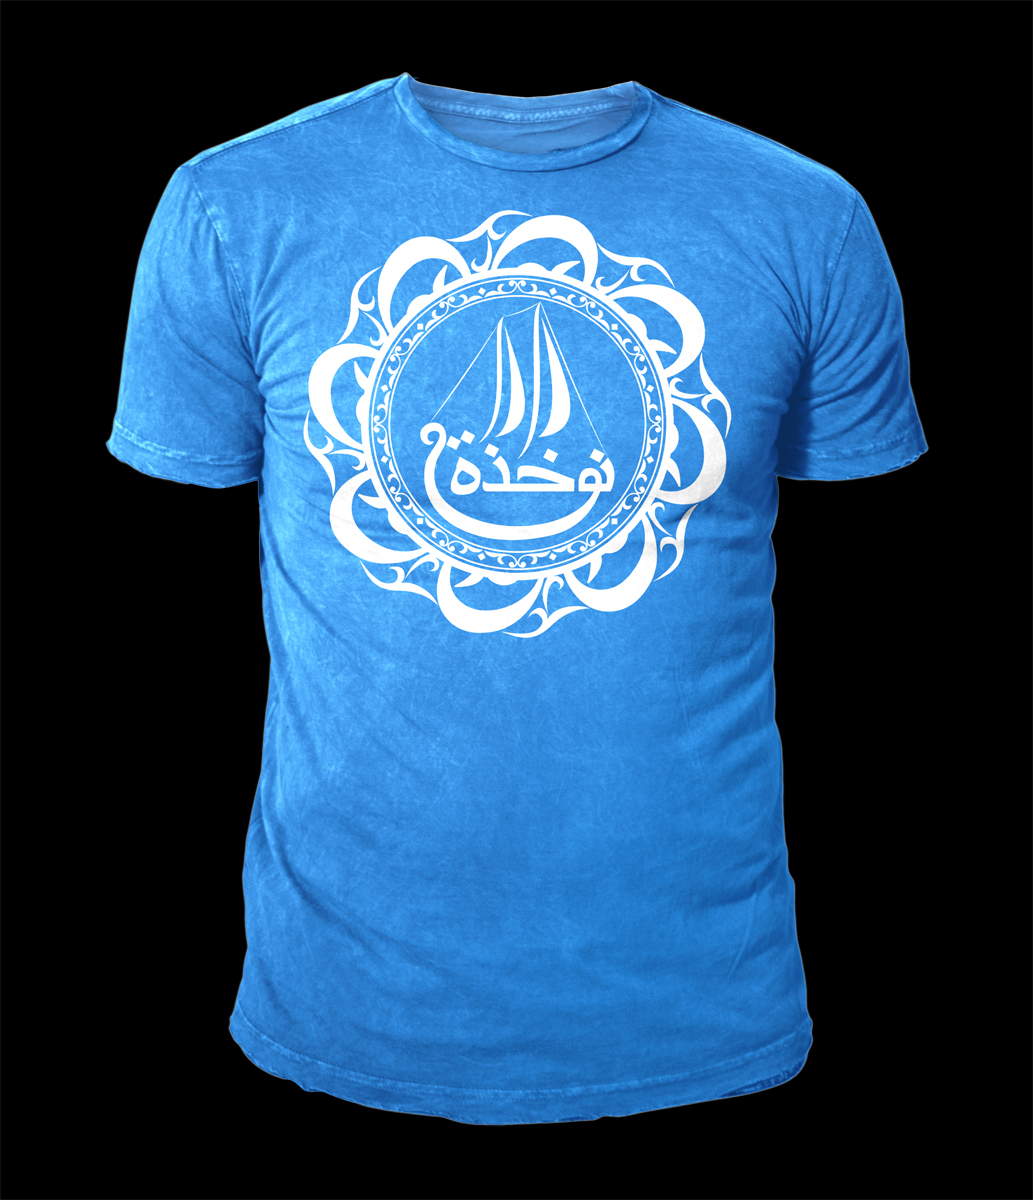 Design t shirt arabic - T Shirt Design Design 5527671 Submitted To Arabic Modern Calligraphy Art